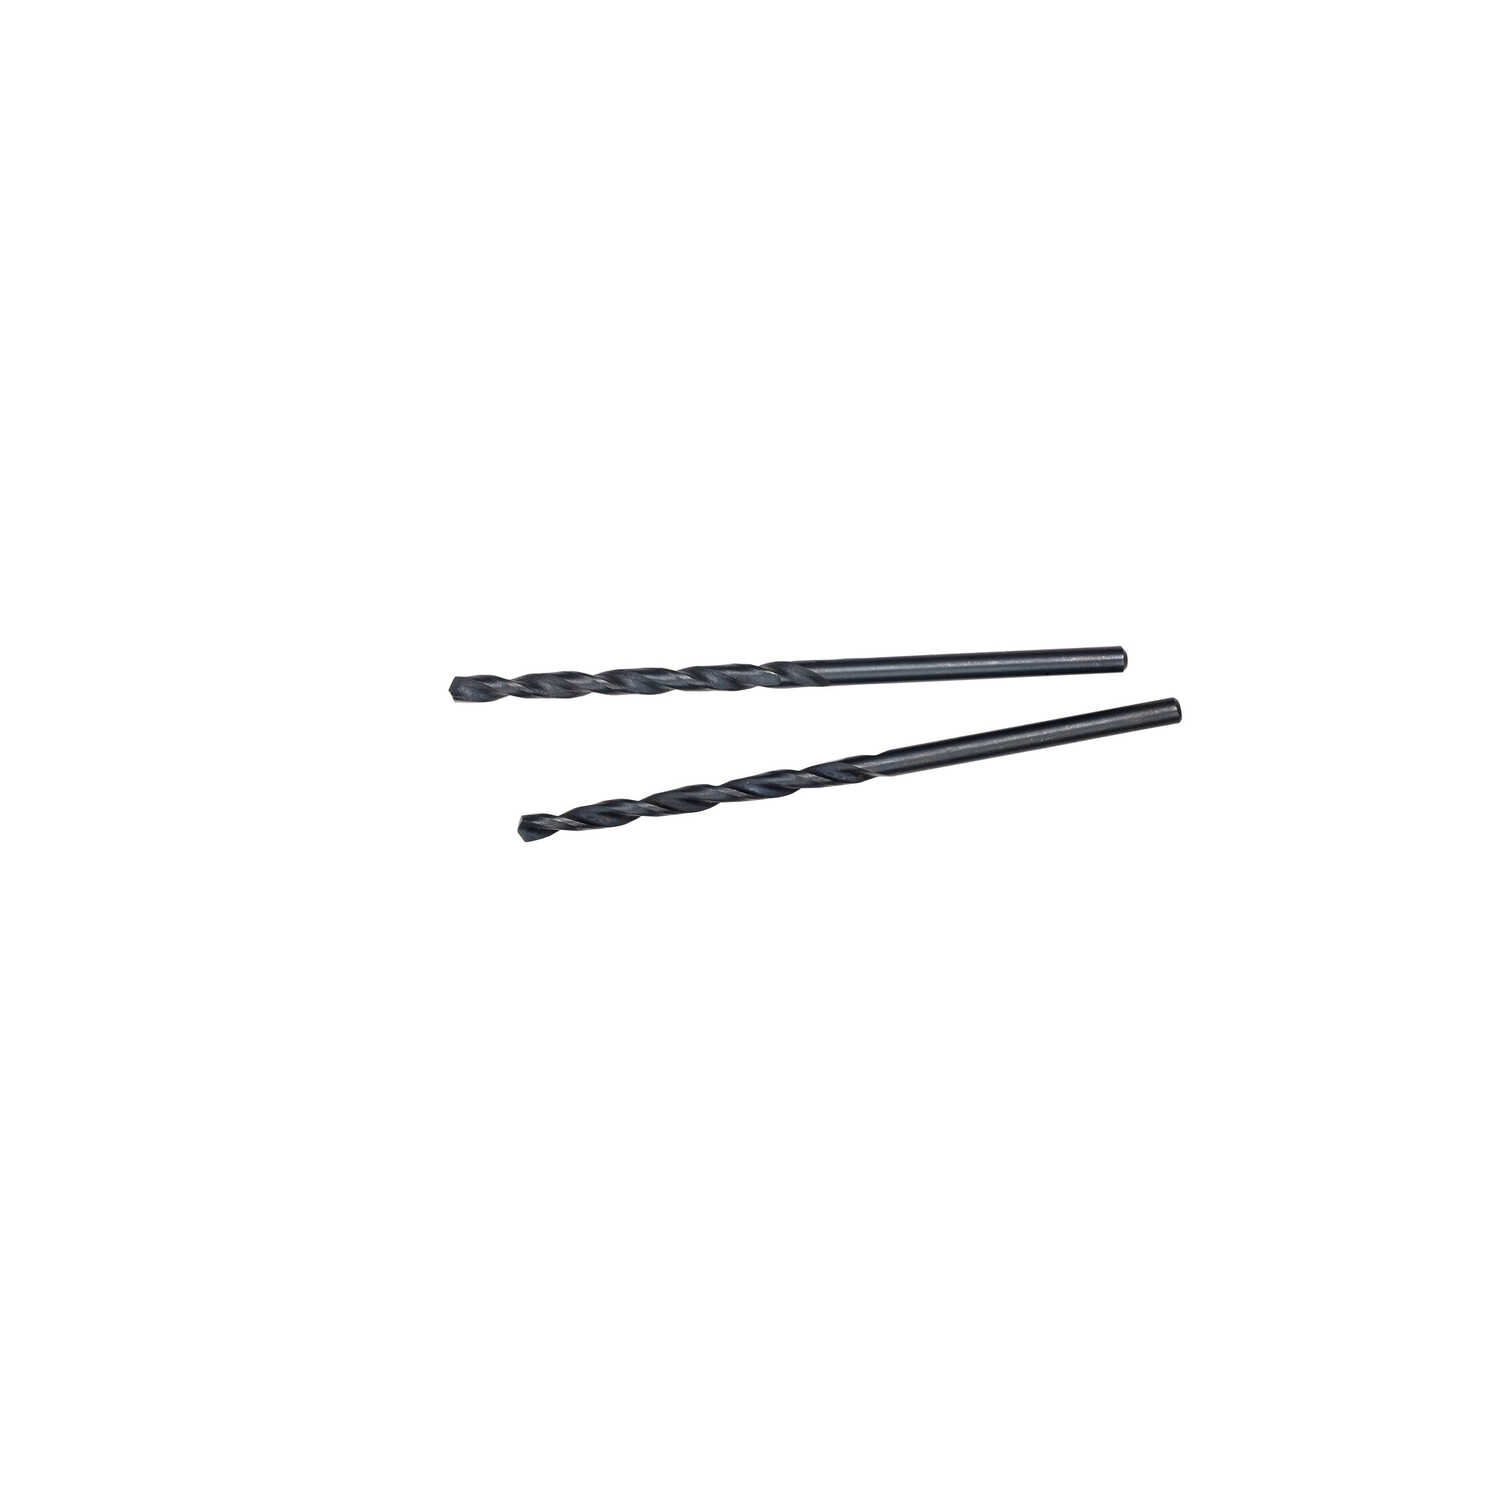 Milwaukee  THUNDERBOLT  3/32 in. Dia. x 2-1/4 in. L Black Oxide  Drill Bit  2 pc.